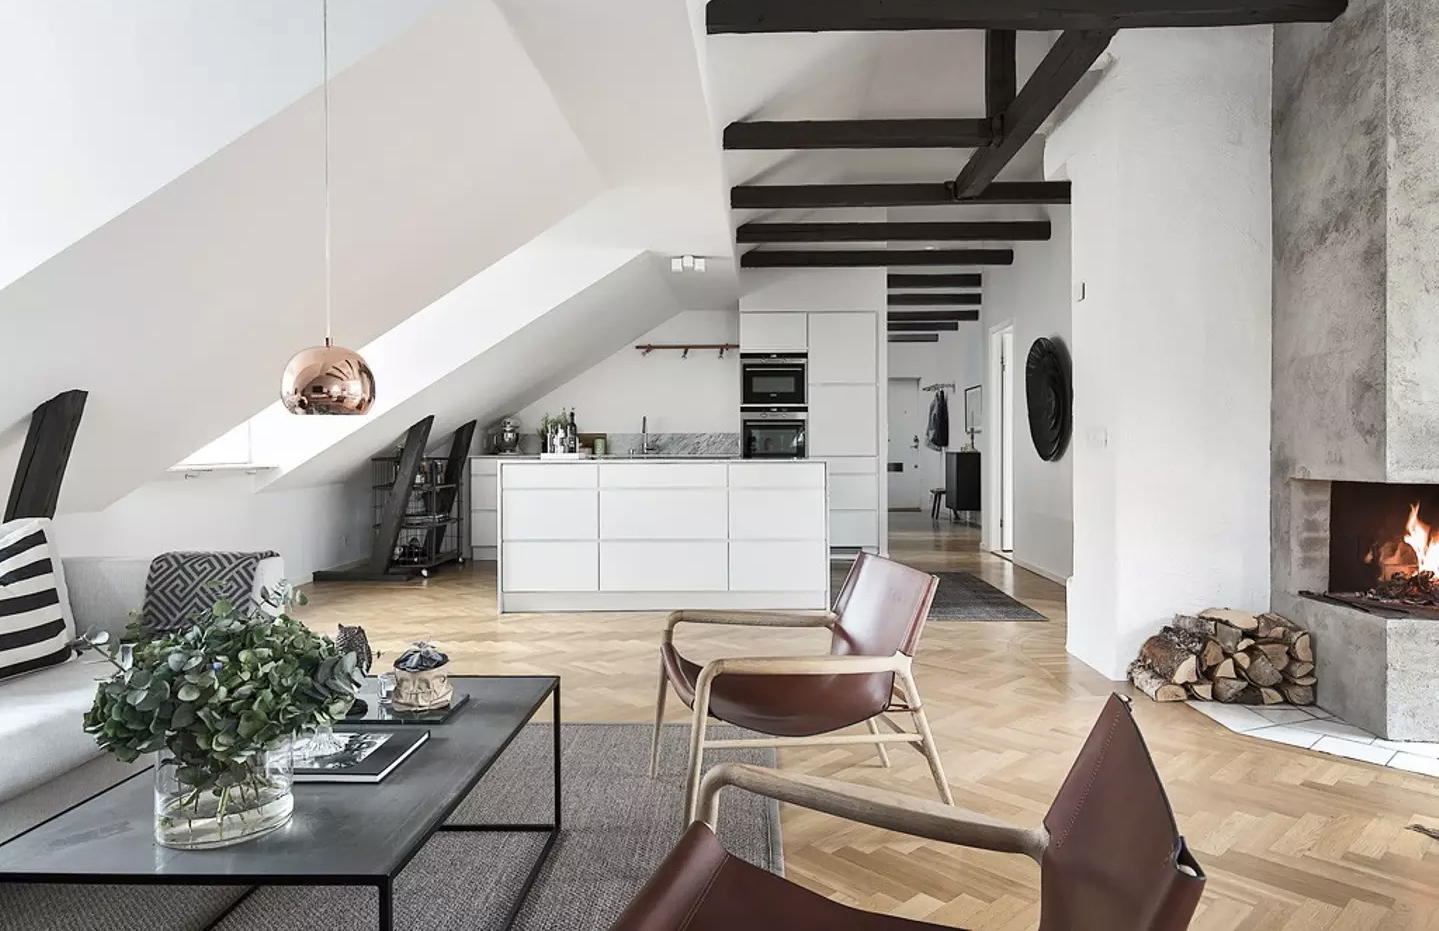 6 of the best stockholm holiday homes for rent right now the spaces